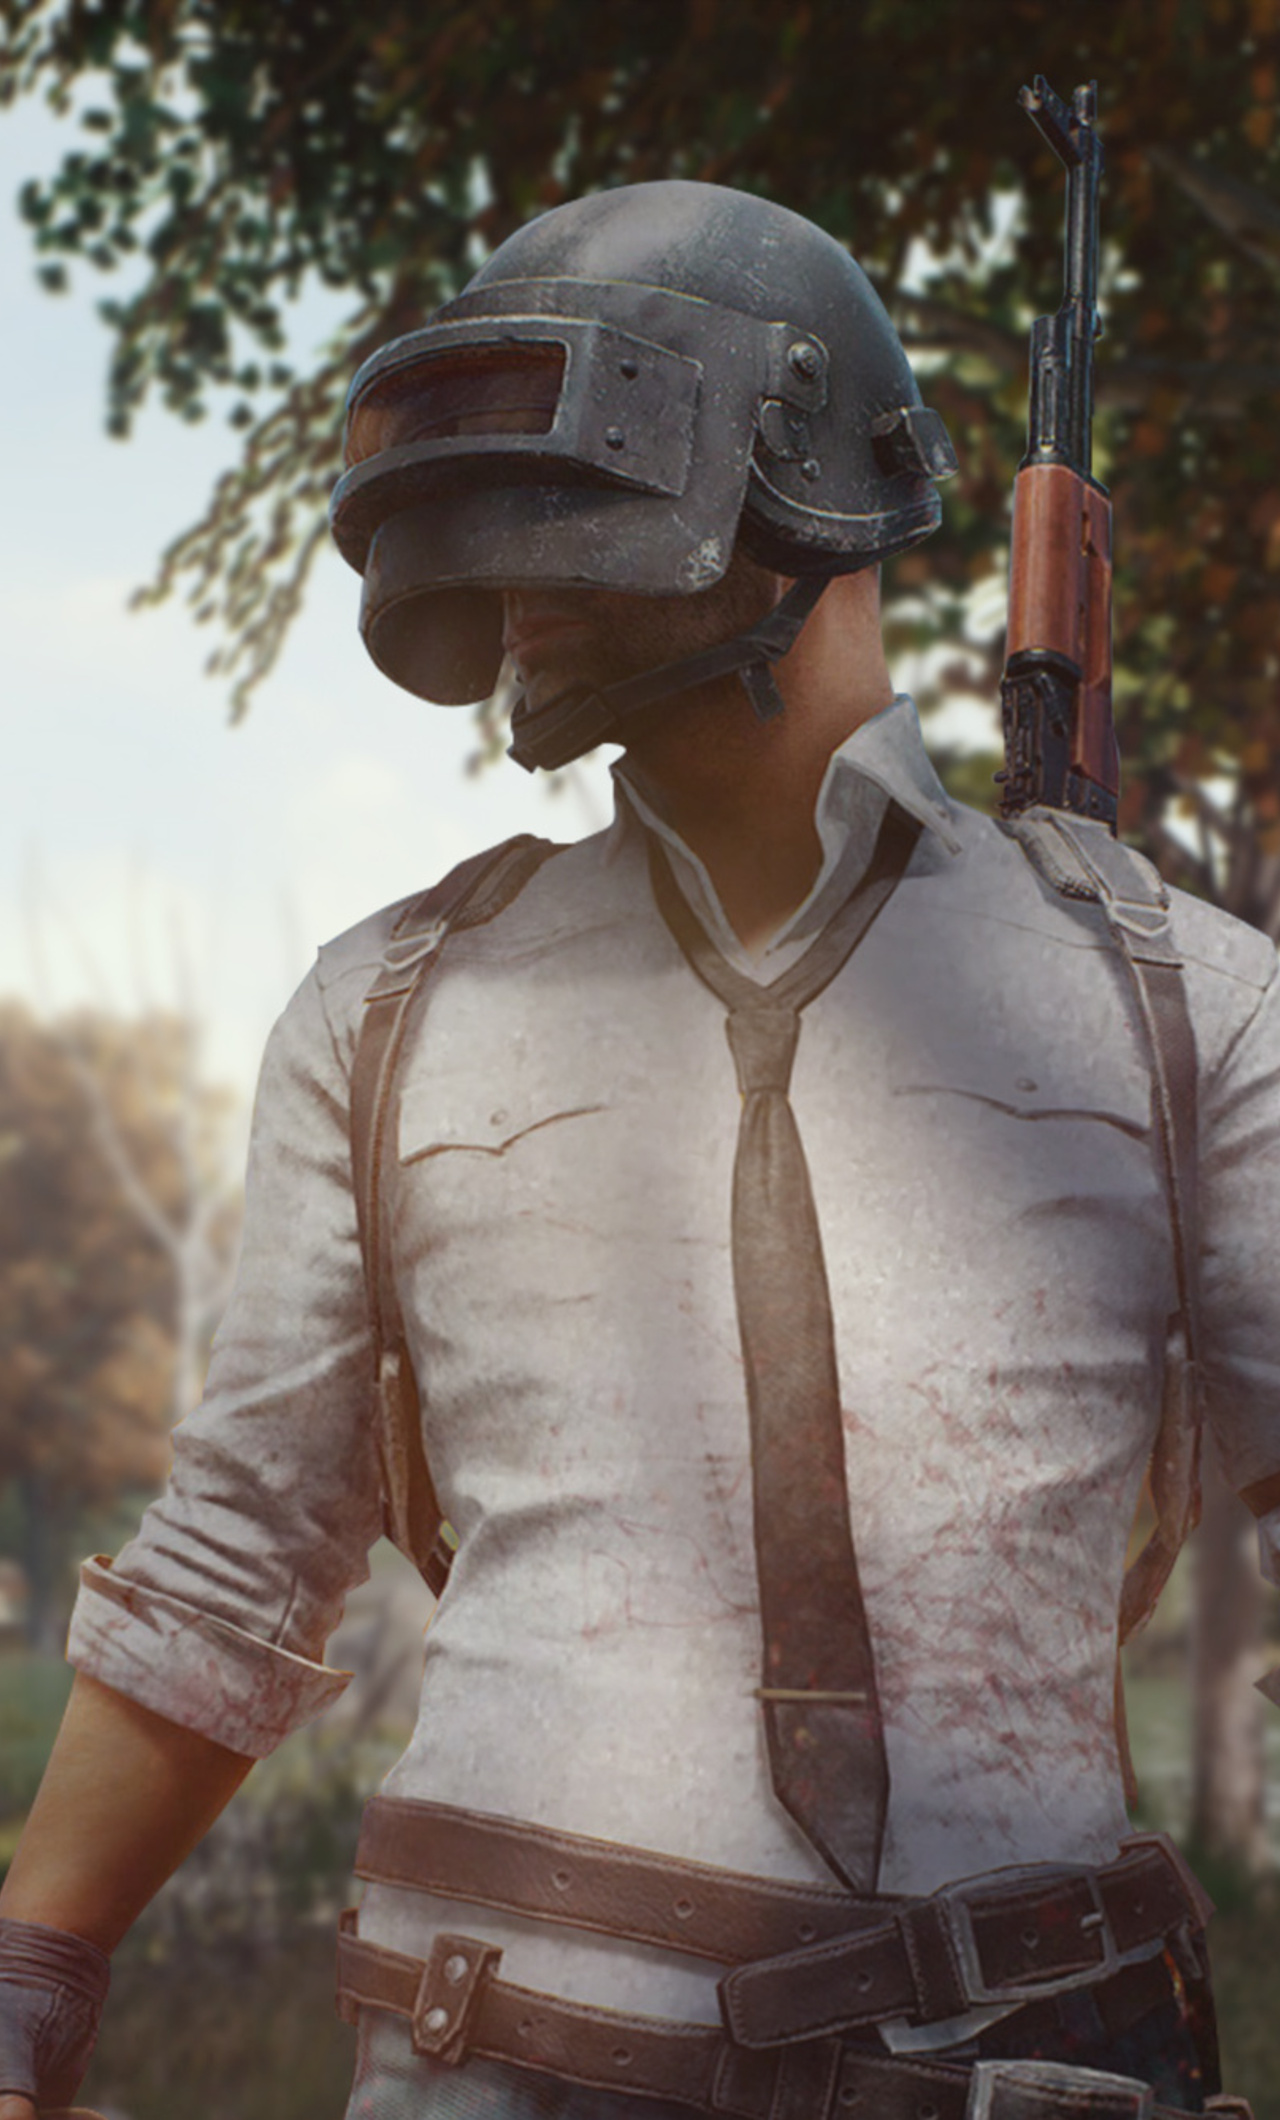 1280x2120 Pubg Mobile Helmet Guy Iphone 6 Hd 4k Wallpapers Images